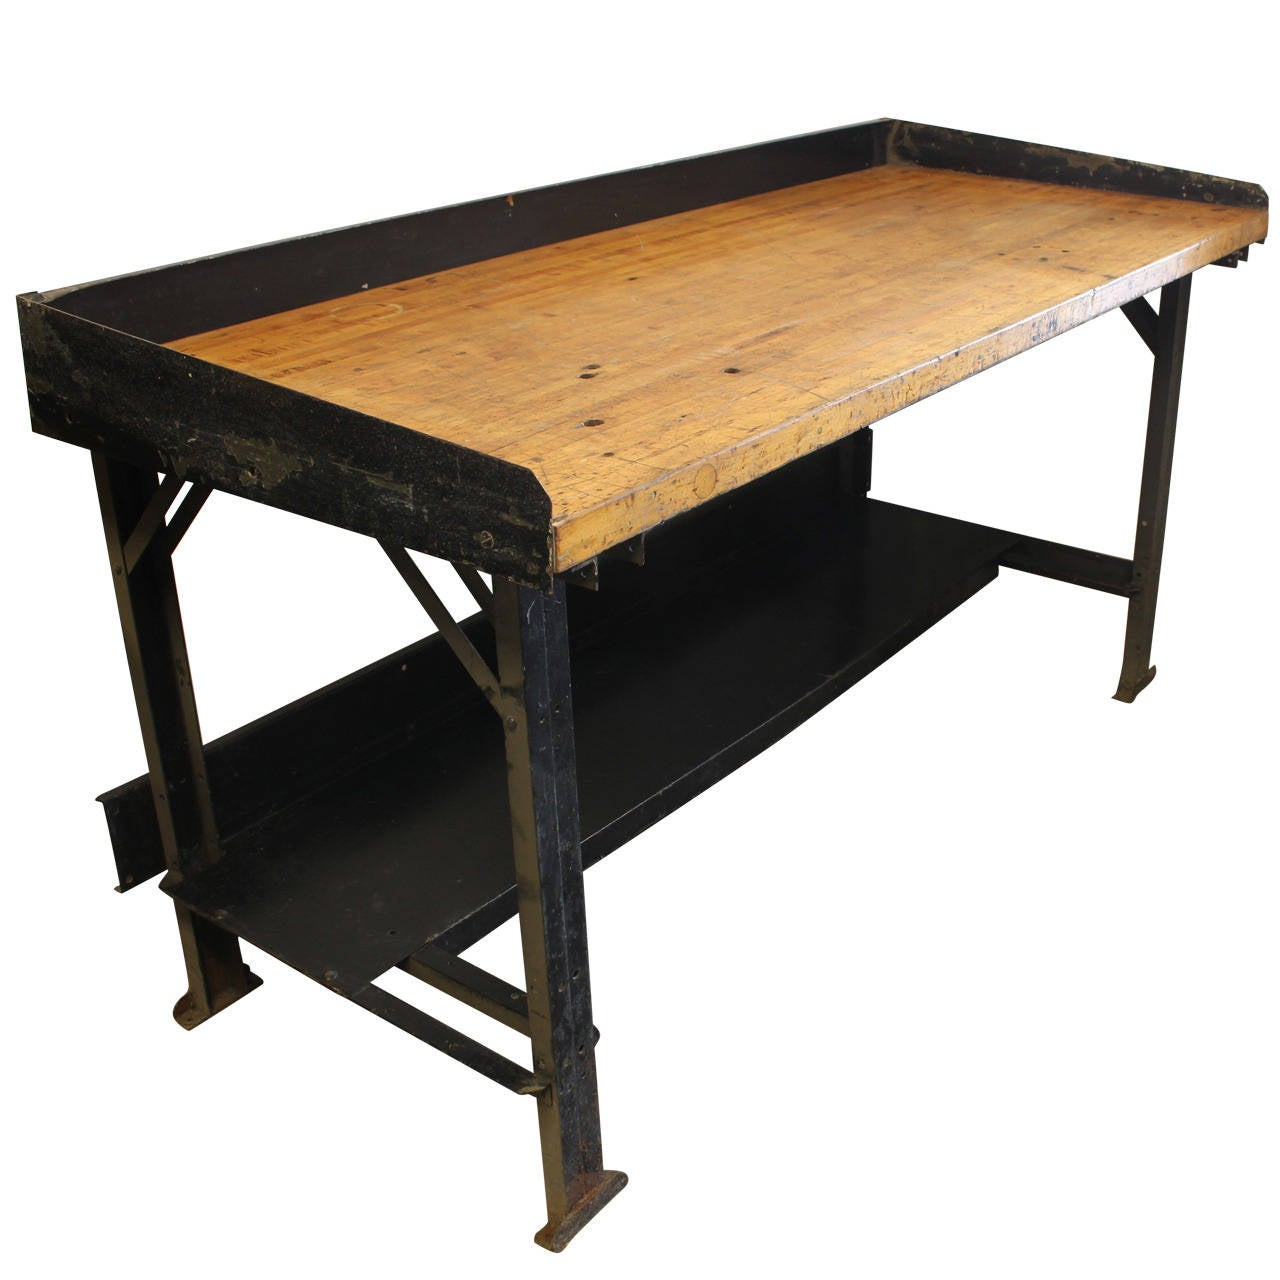 Vintage industrial work table at 1stdibs for Furniture work table